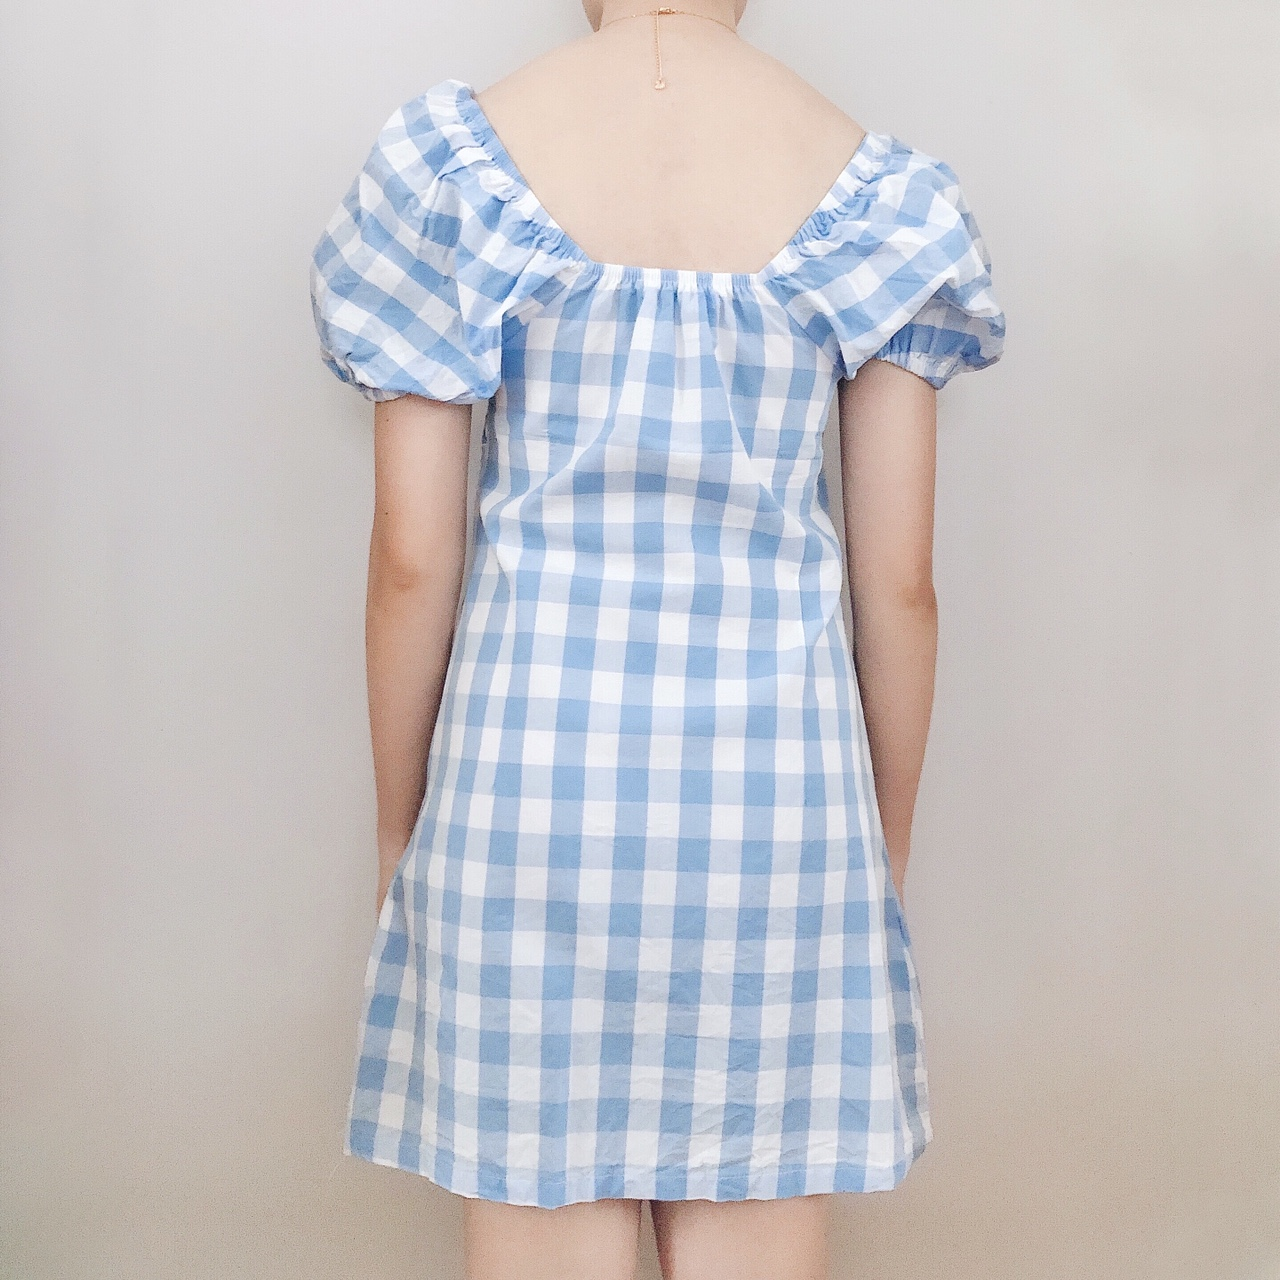 Baby Blue & White Gingham Picnic Dress